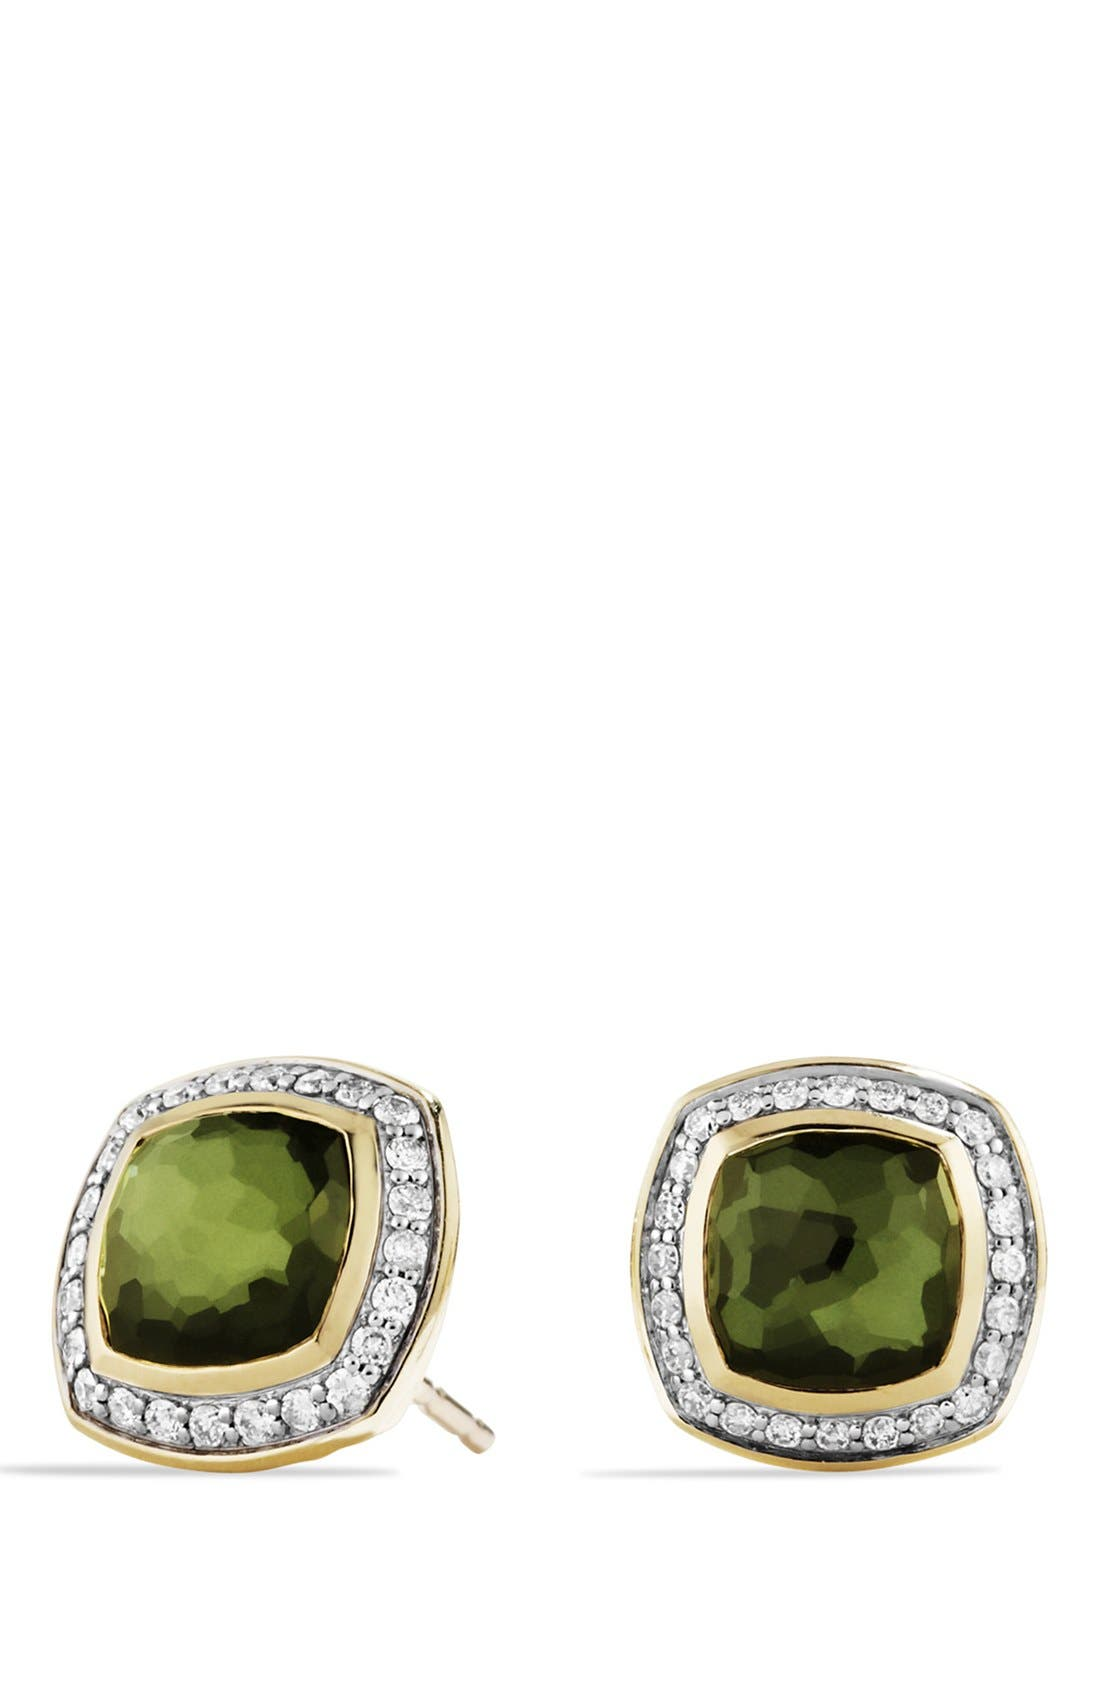 Alternate Image 1 Selected - David Yurman 'Albion' Earrings with Semiprecious Stone and Diamonds in Gold